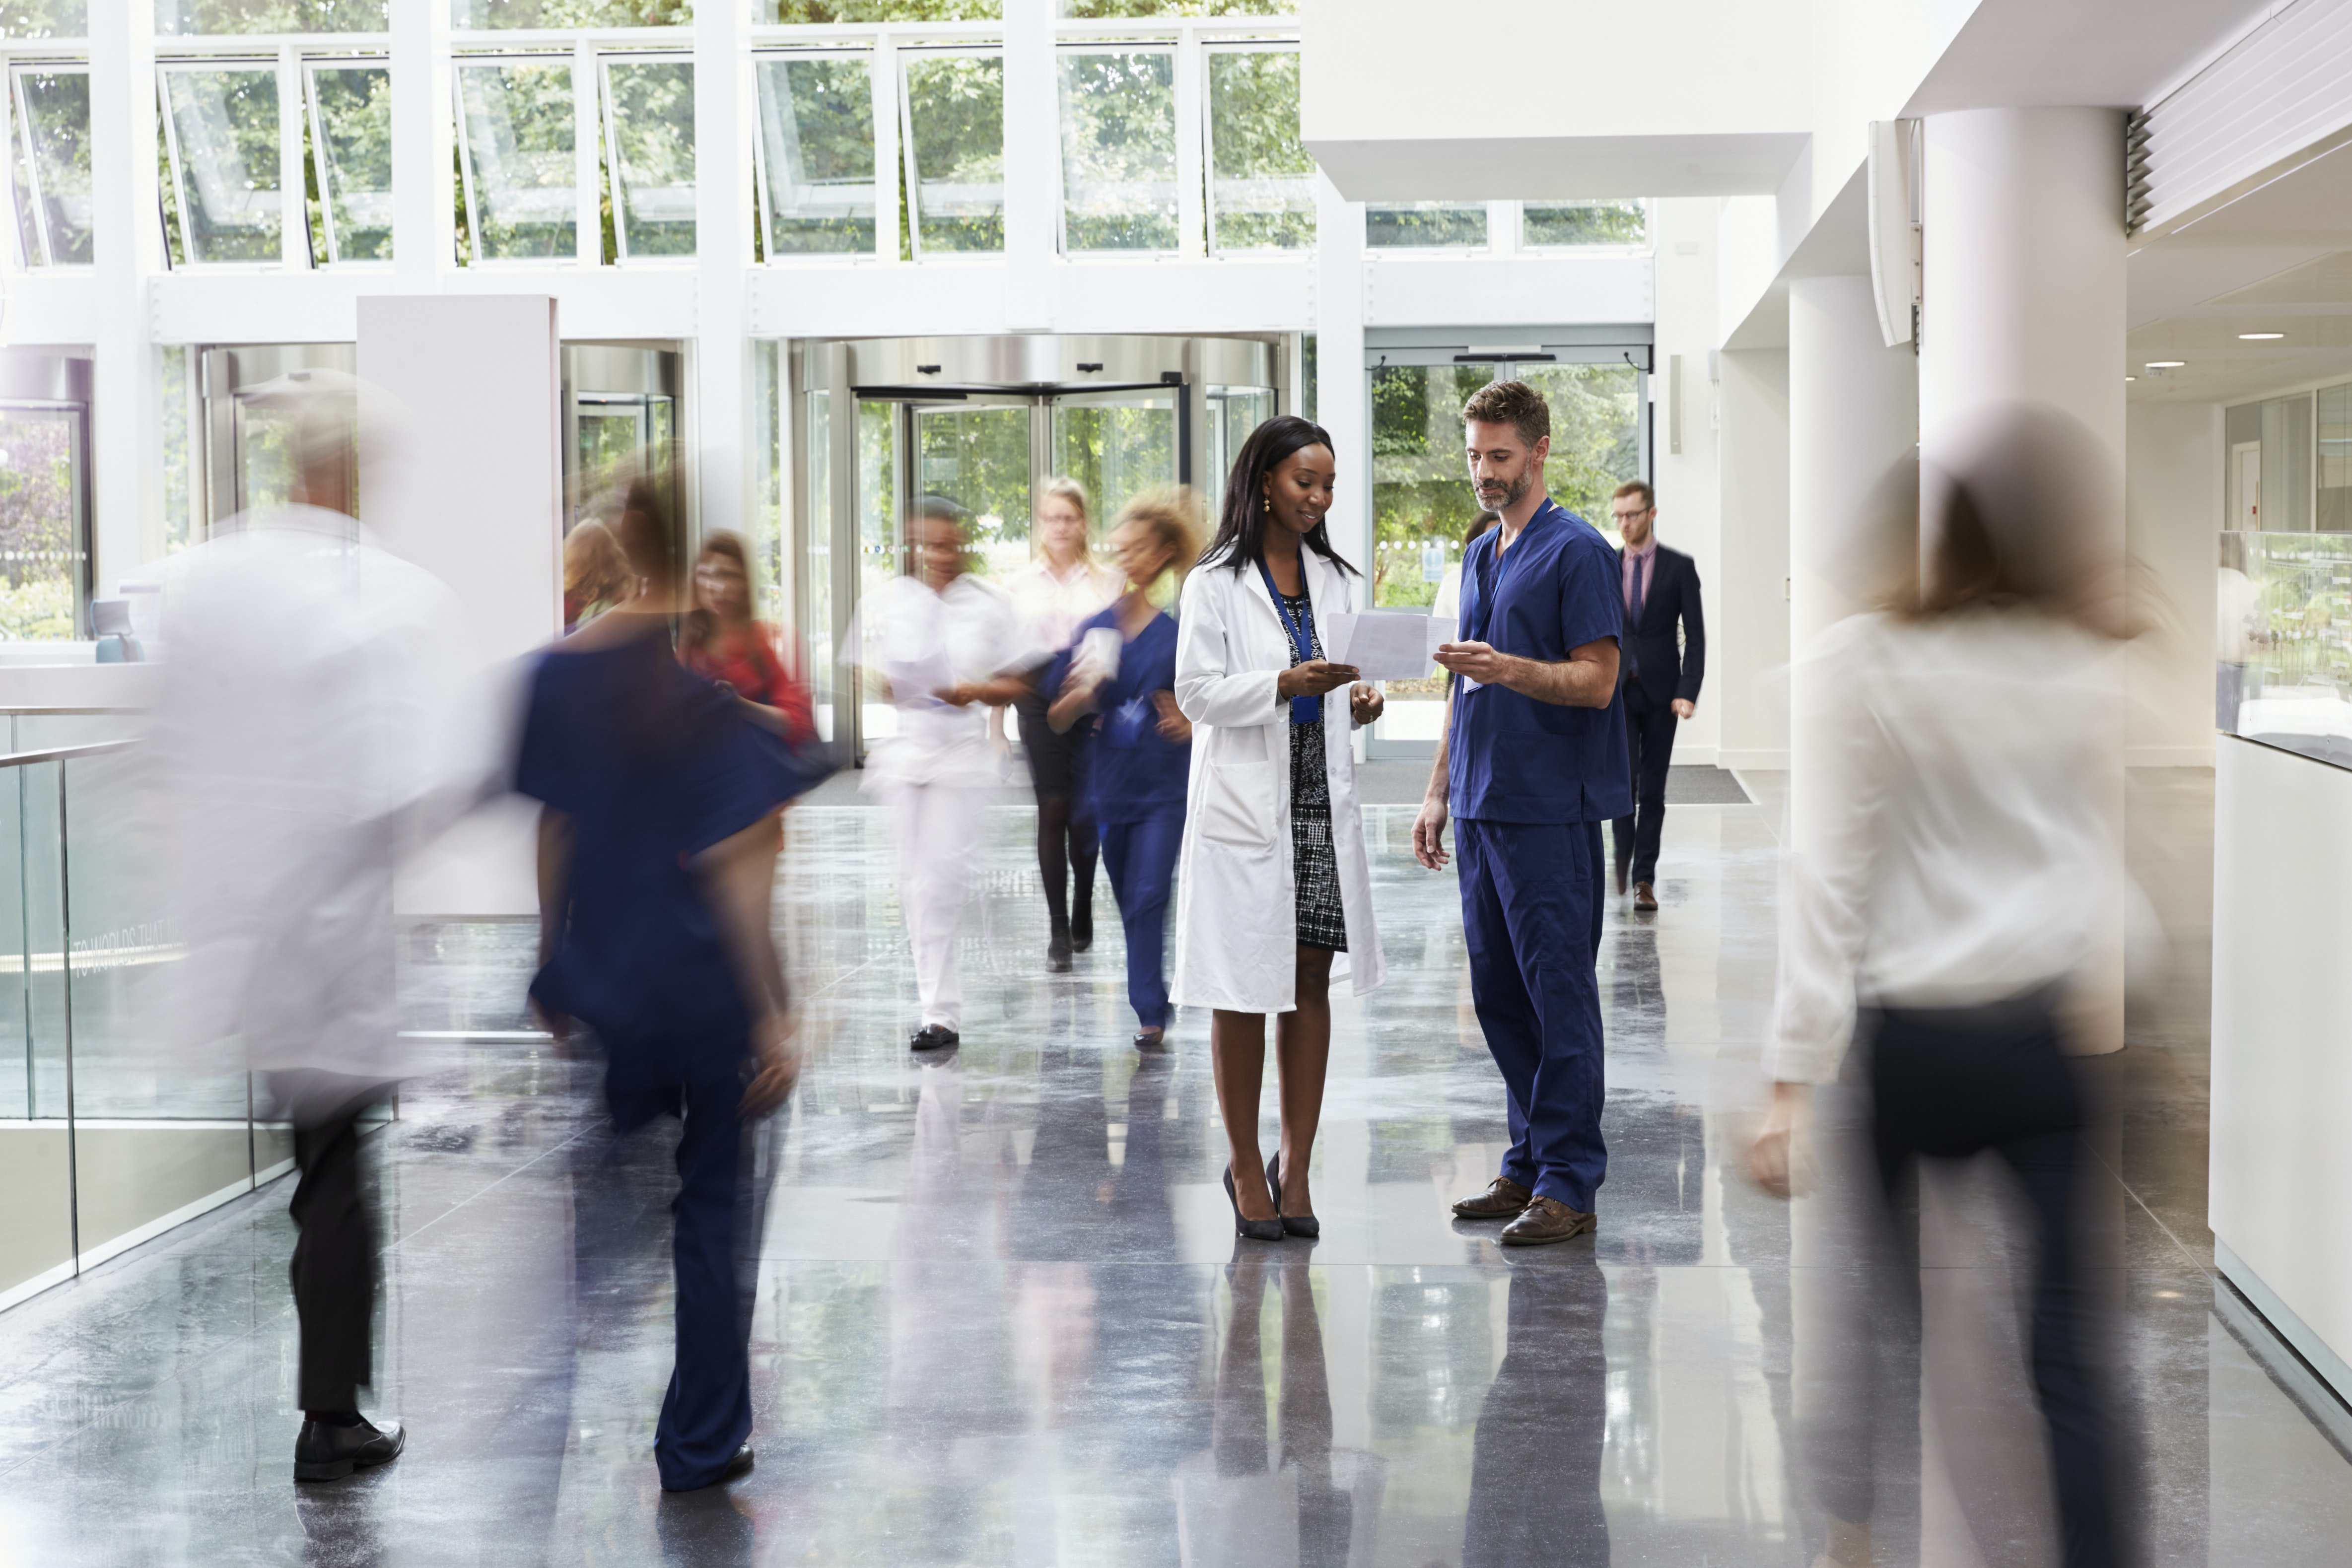 Personnel in the lobby of a busy hospital